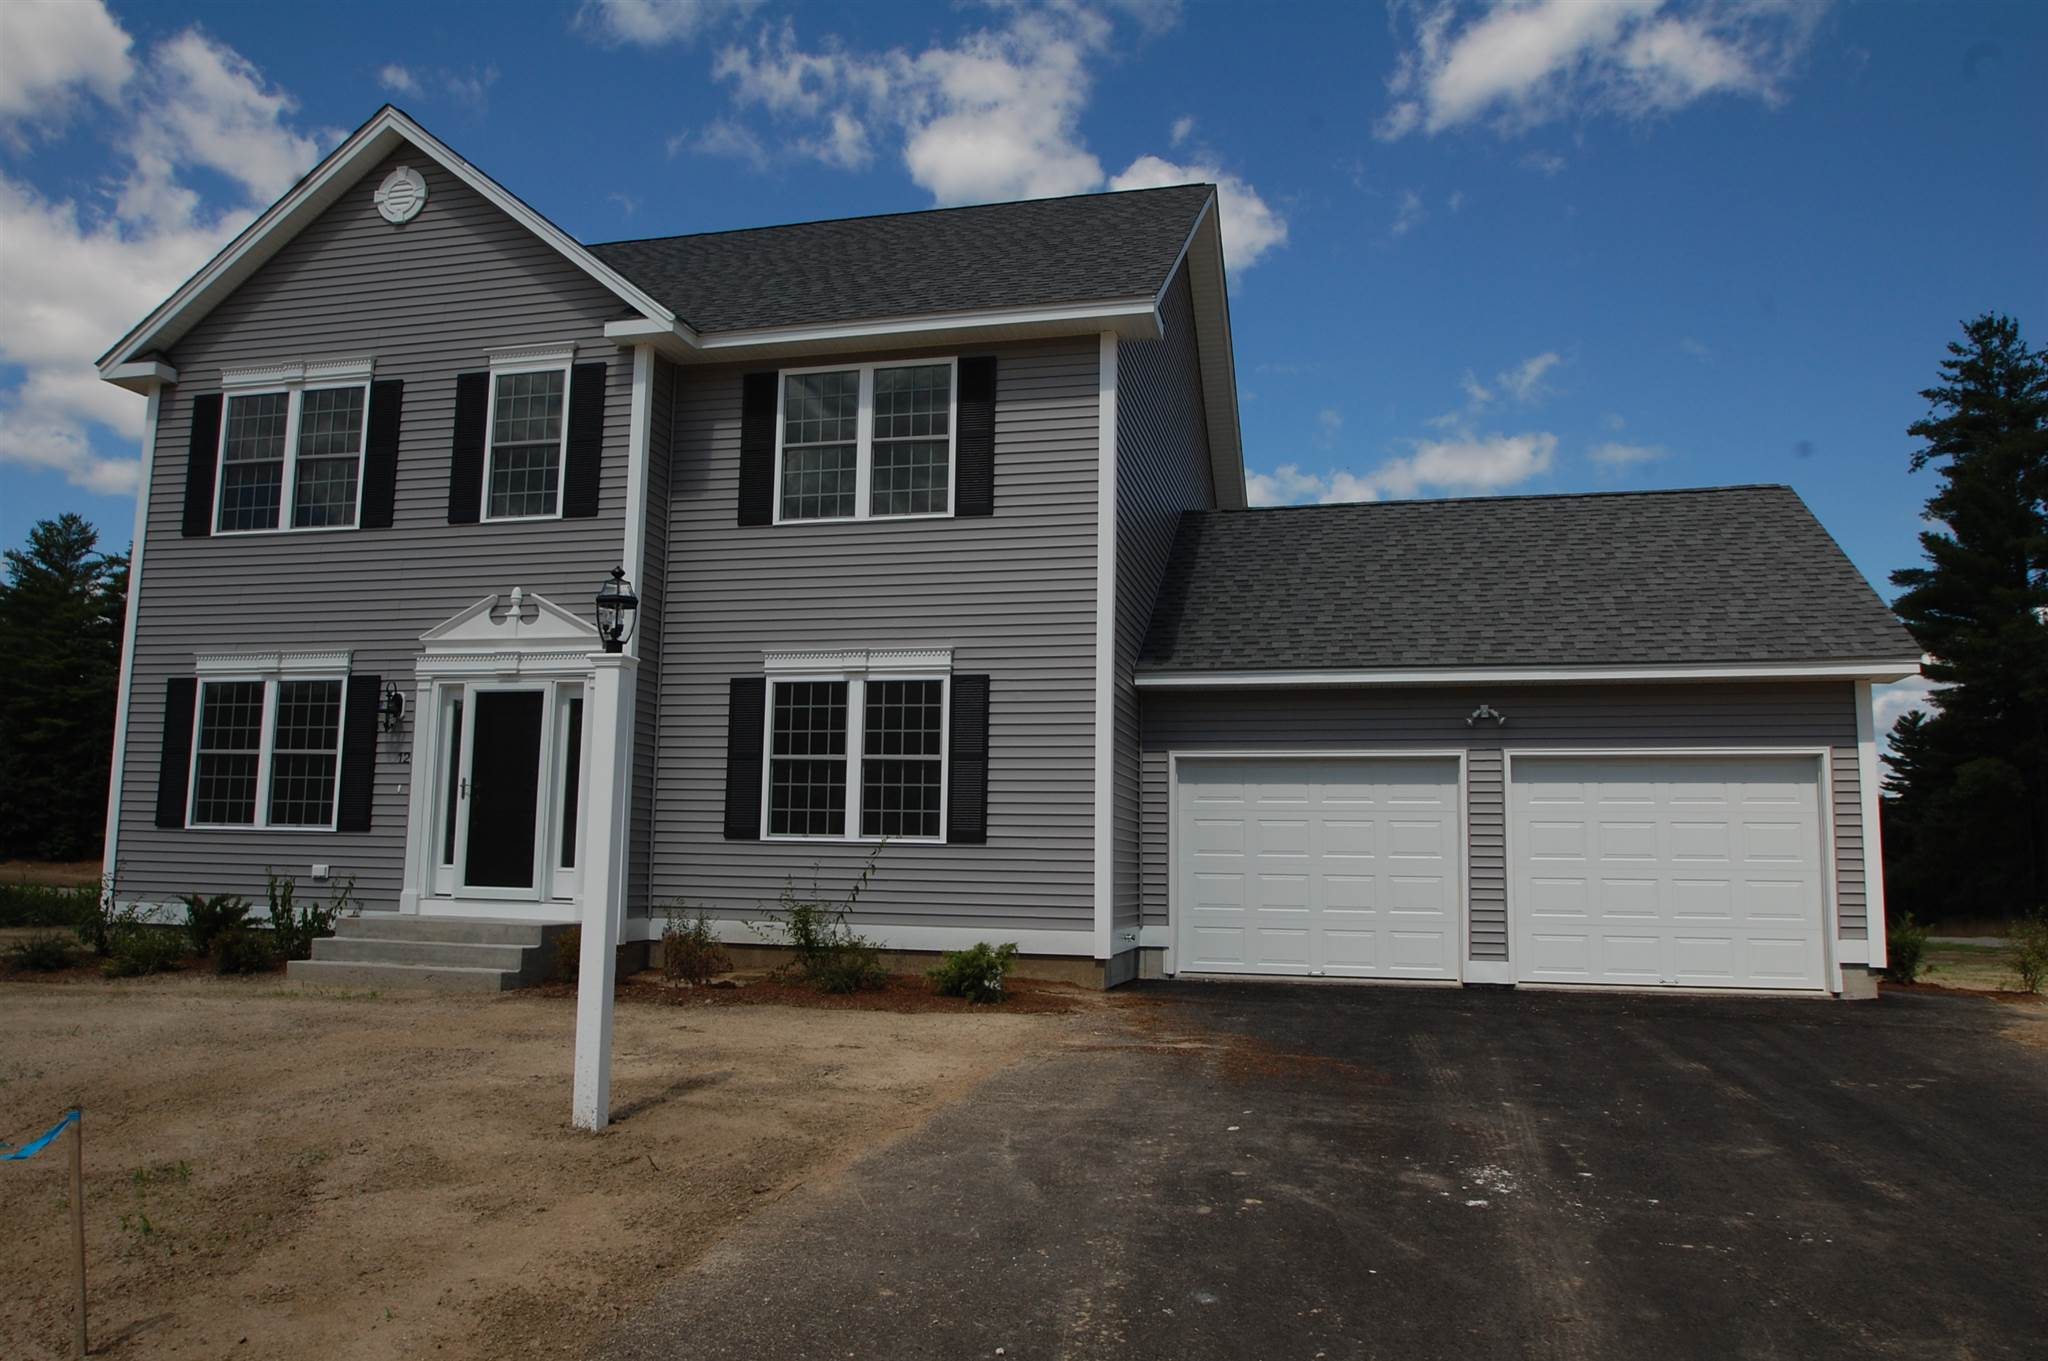 MLS 4785933: 12 Orchard Drive-Unit 56, Merrimack NH